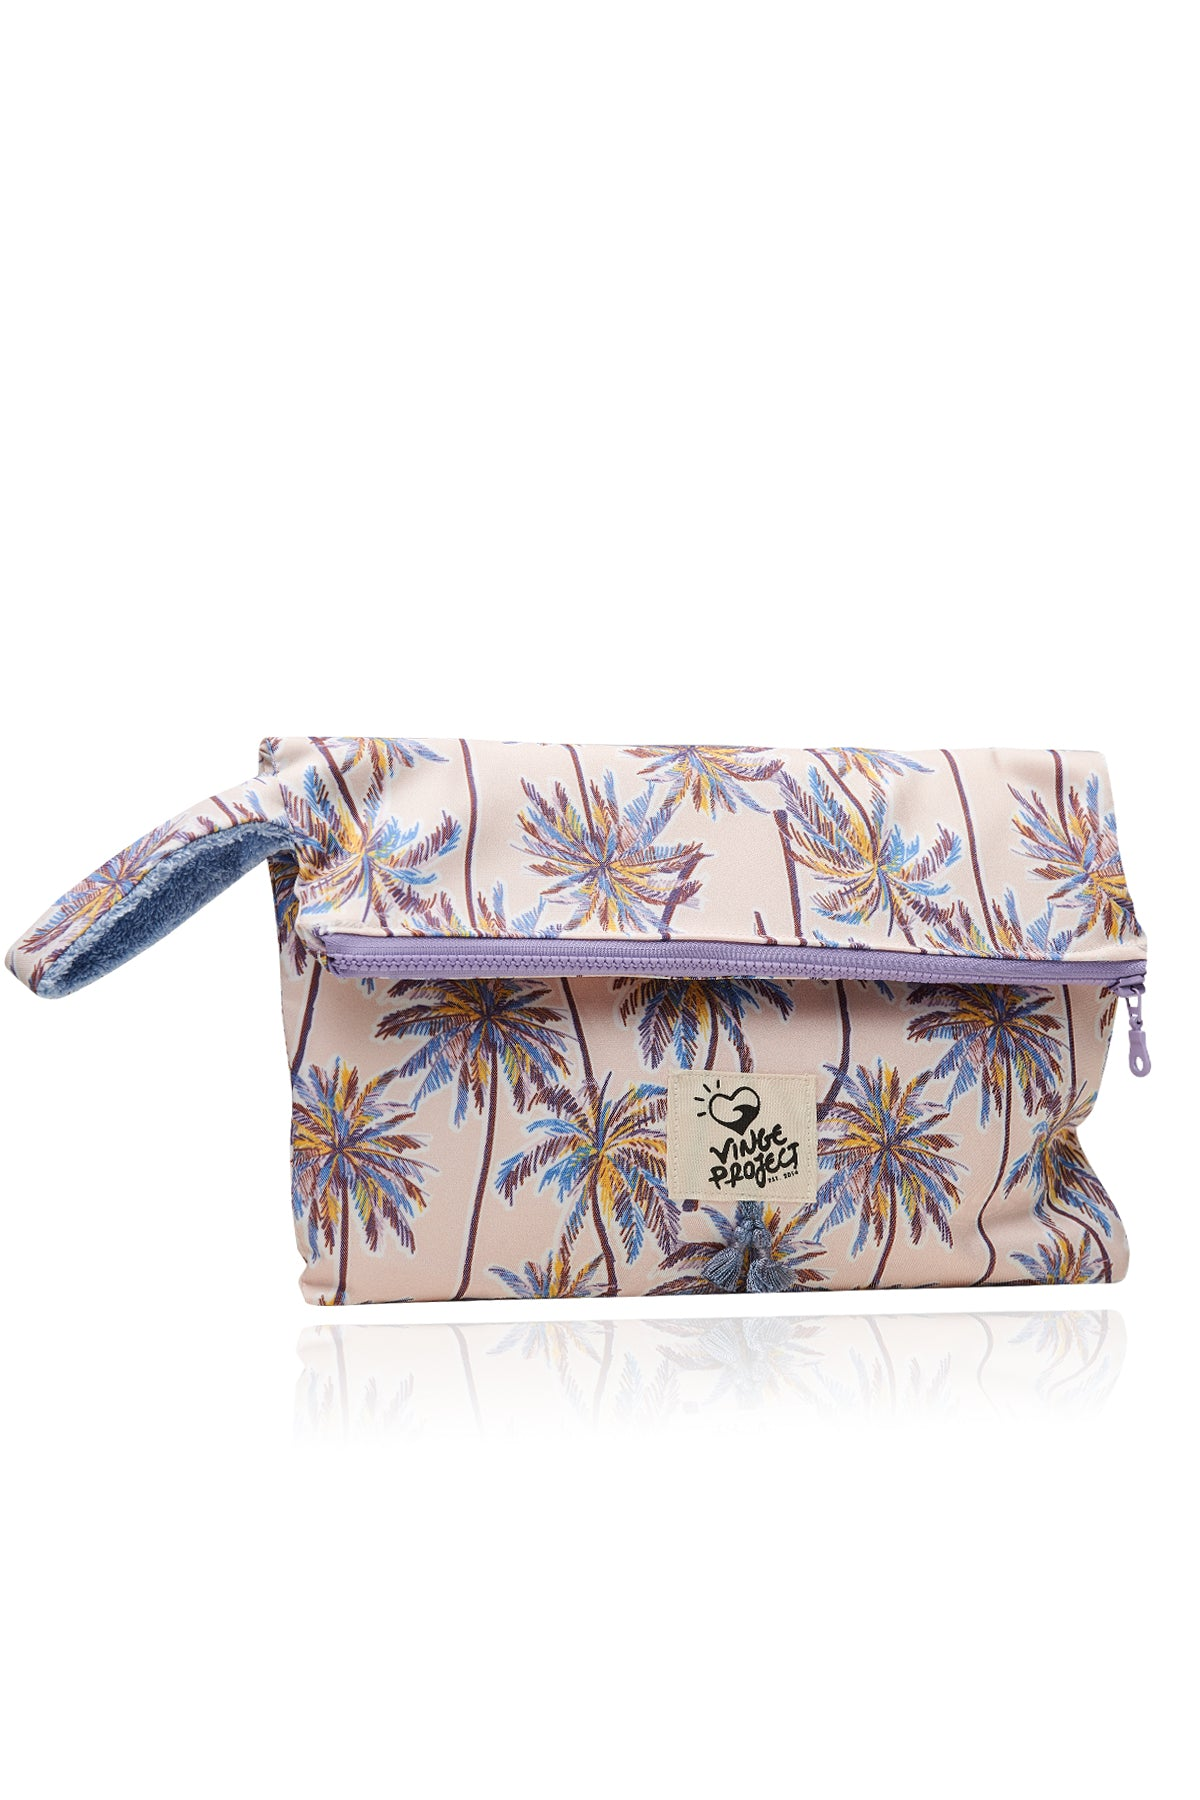 Keilani 𝐁𝐢𝐠 Waterproof Clutch Bag (5 LAST ITEMS)